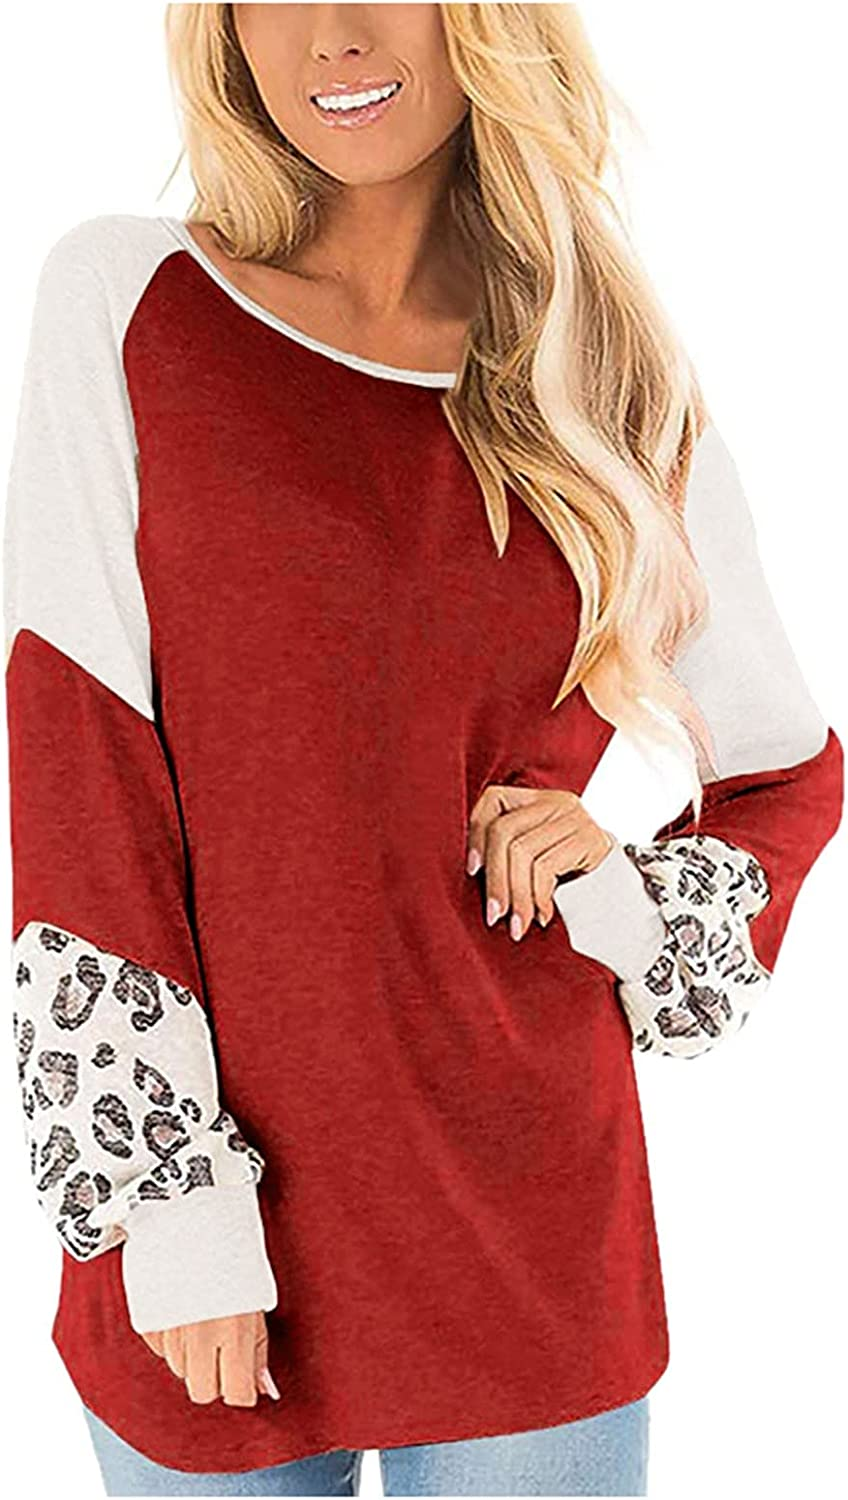 Xinantime Women's Casual Raglan Long Sleeve Tops Leopard Printed Patchwork Shirt Ladies Round Neck Loose Oversized Tunic